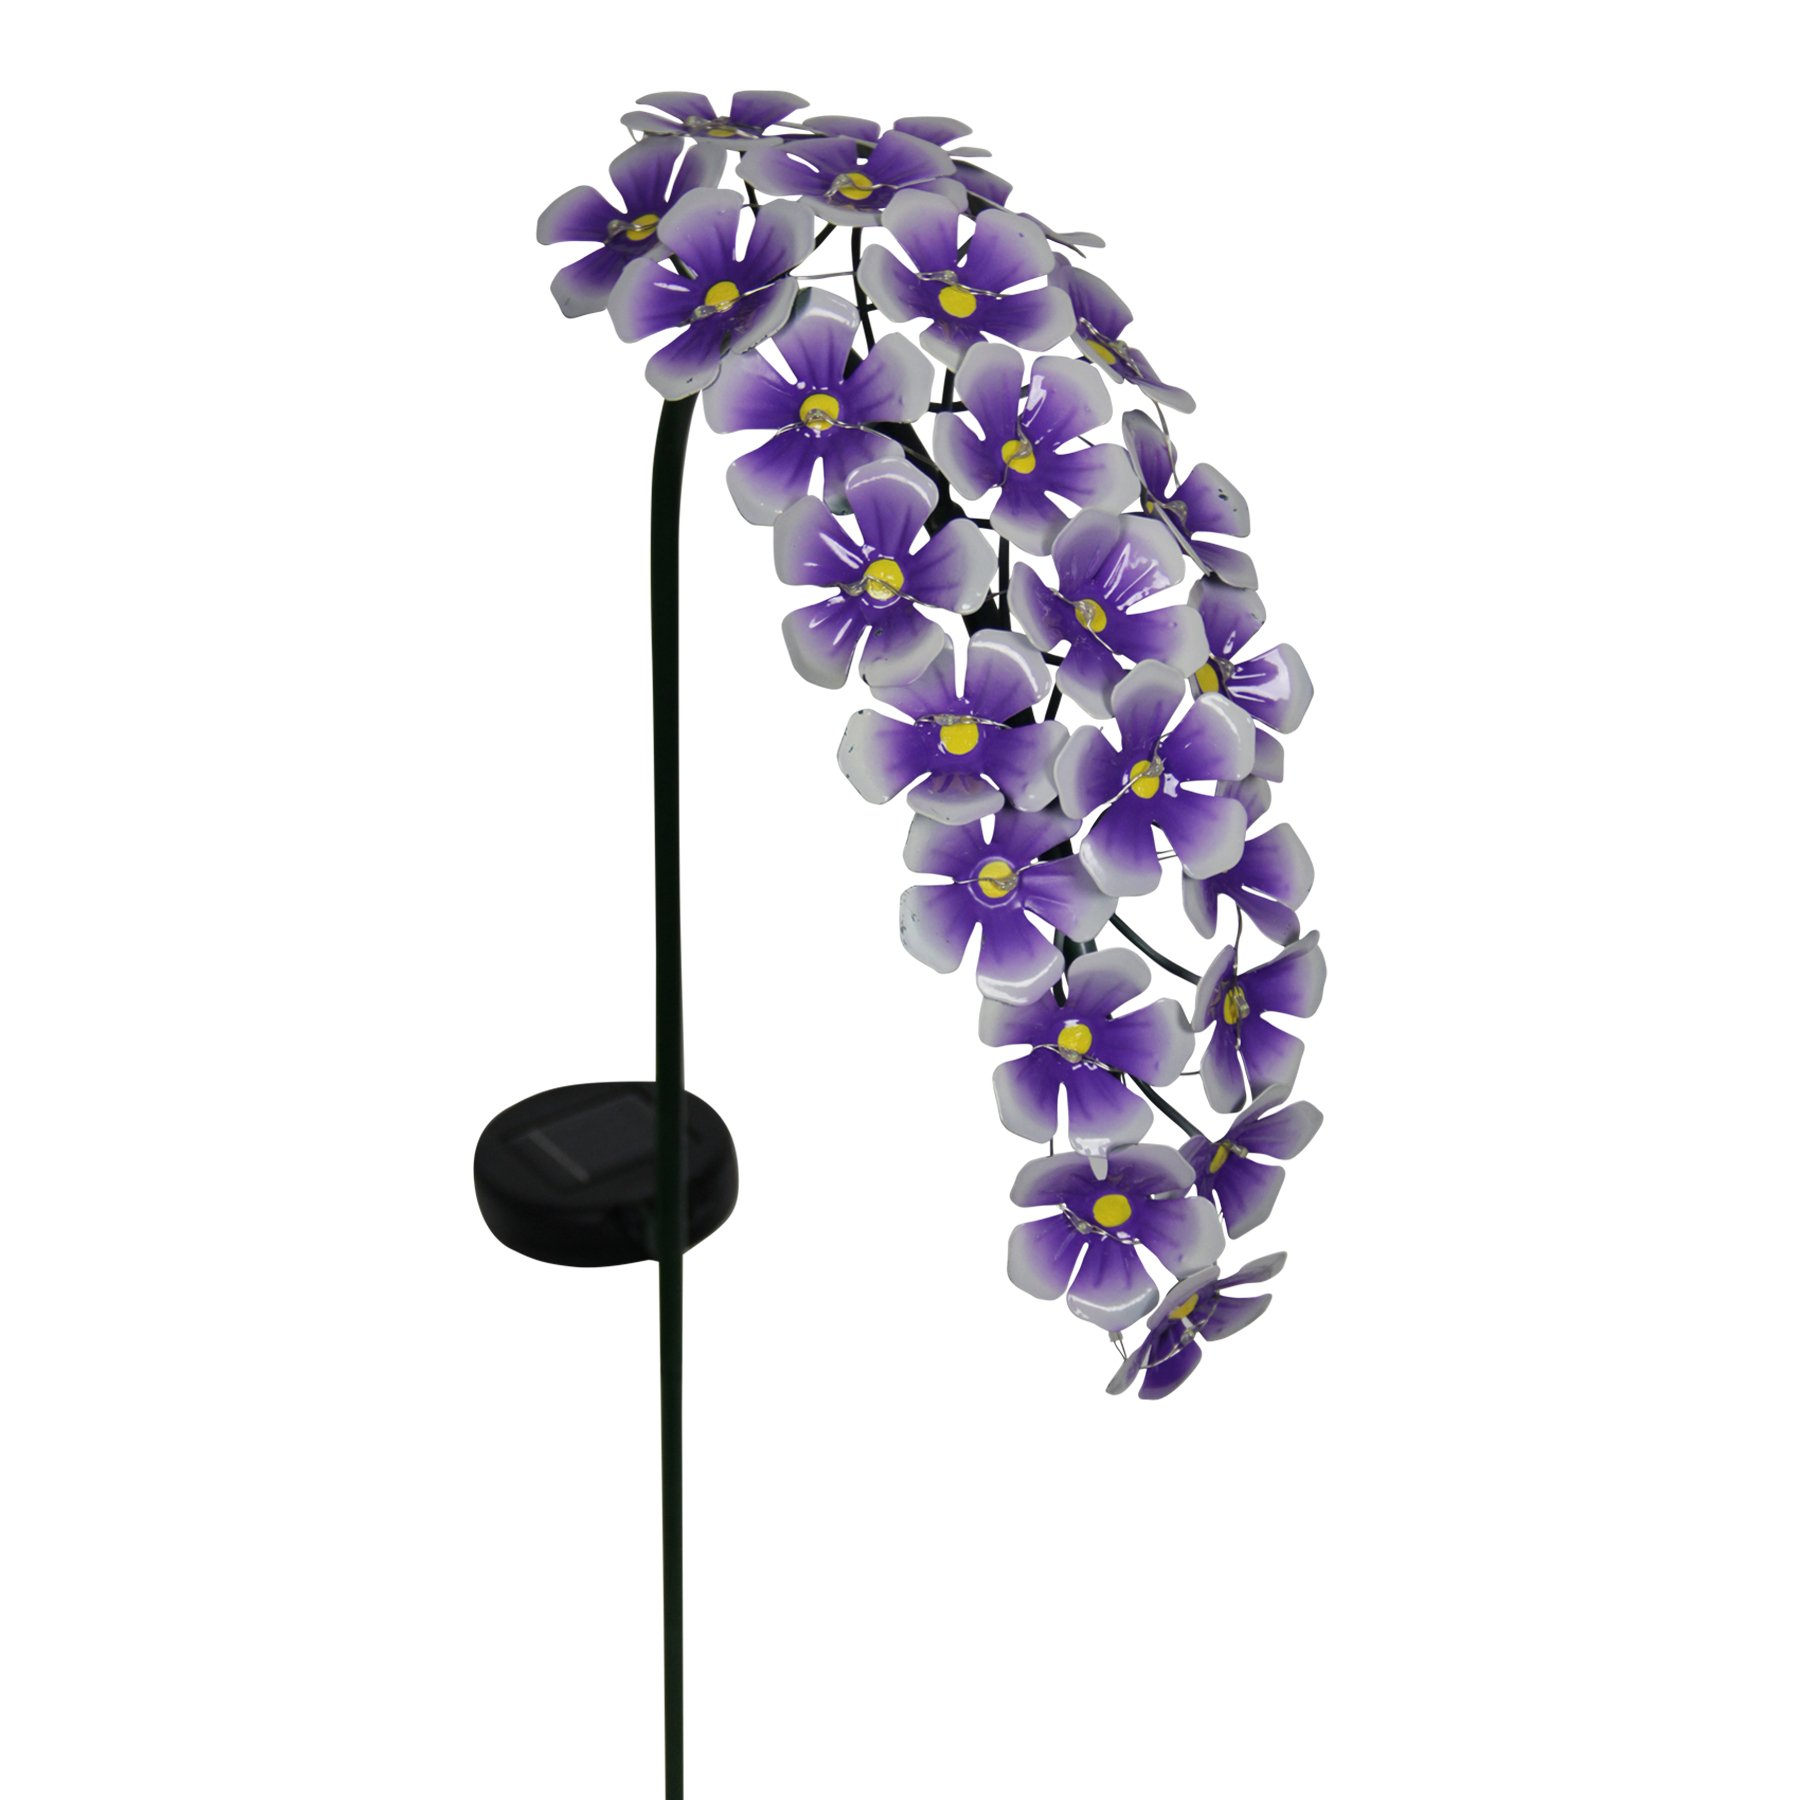 Exhart Hanging Hydrangea Garden Stake, 24 LED Lights, Solar Powered, Metal, Purple, 11''L x 5''W x 28''H